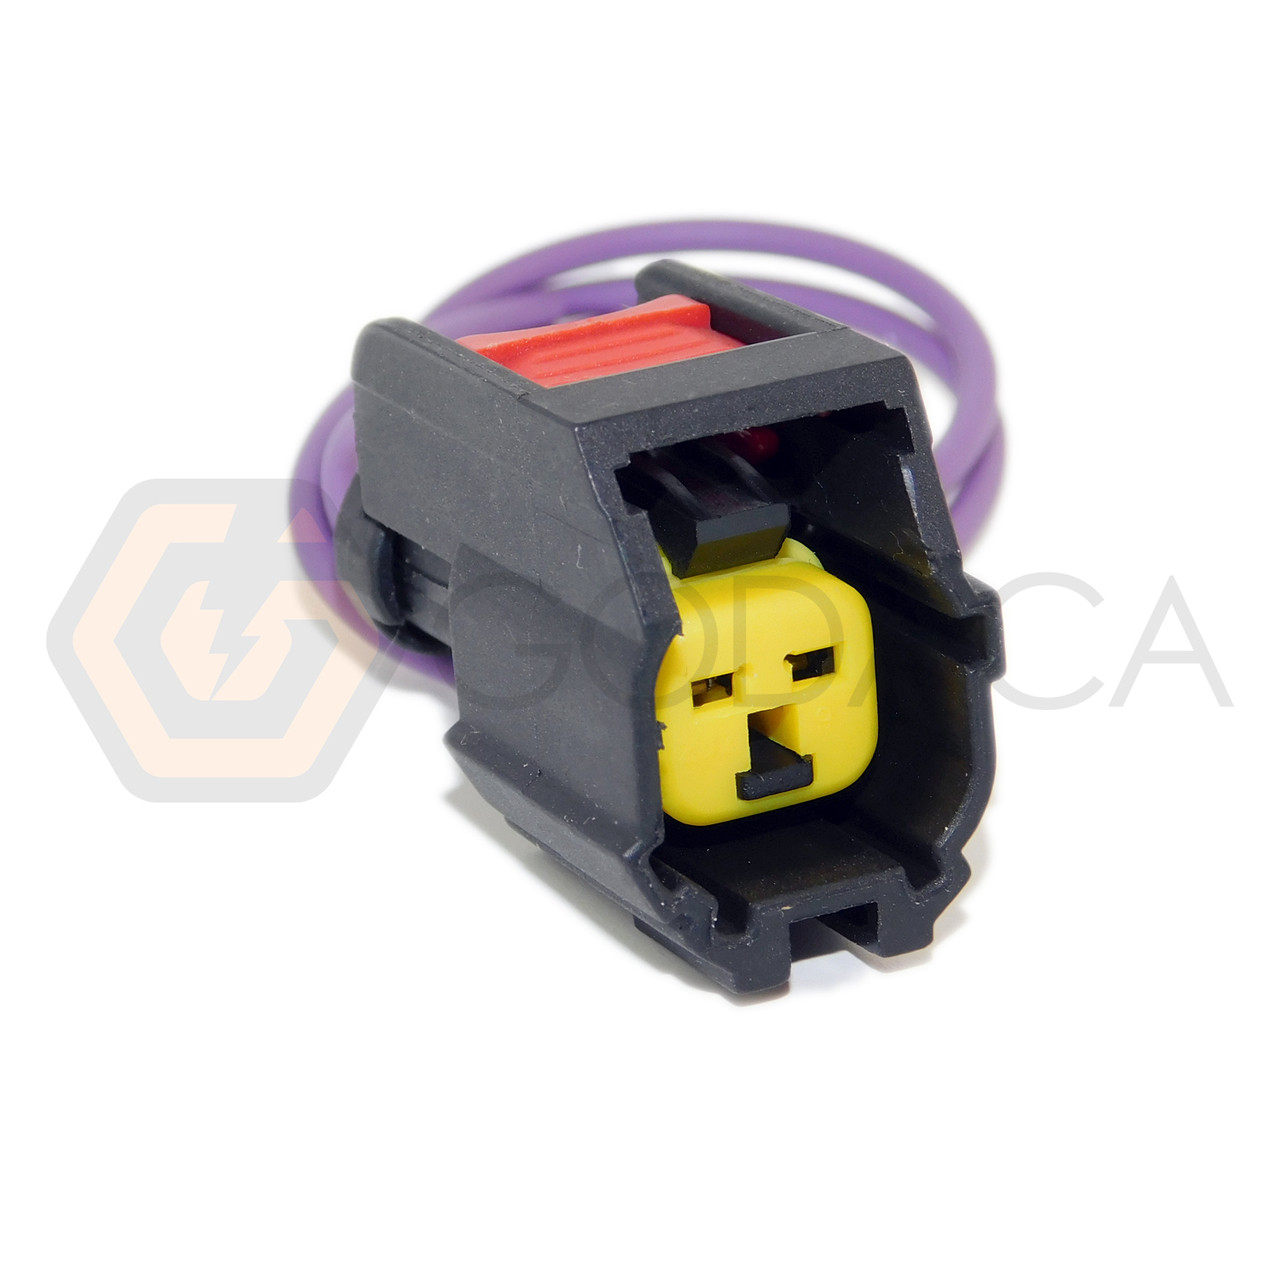 medium resolution of 1 x connector pigtail female fuel injector electrical wire harness 2 way godaca llc